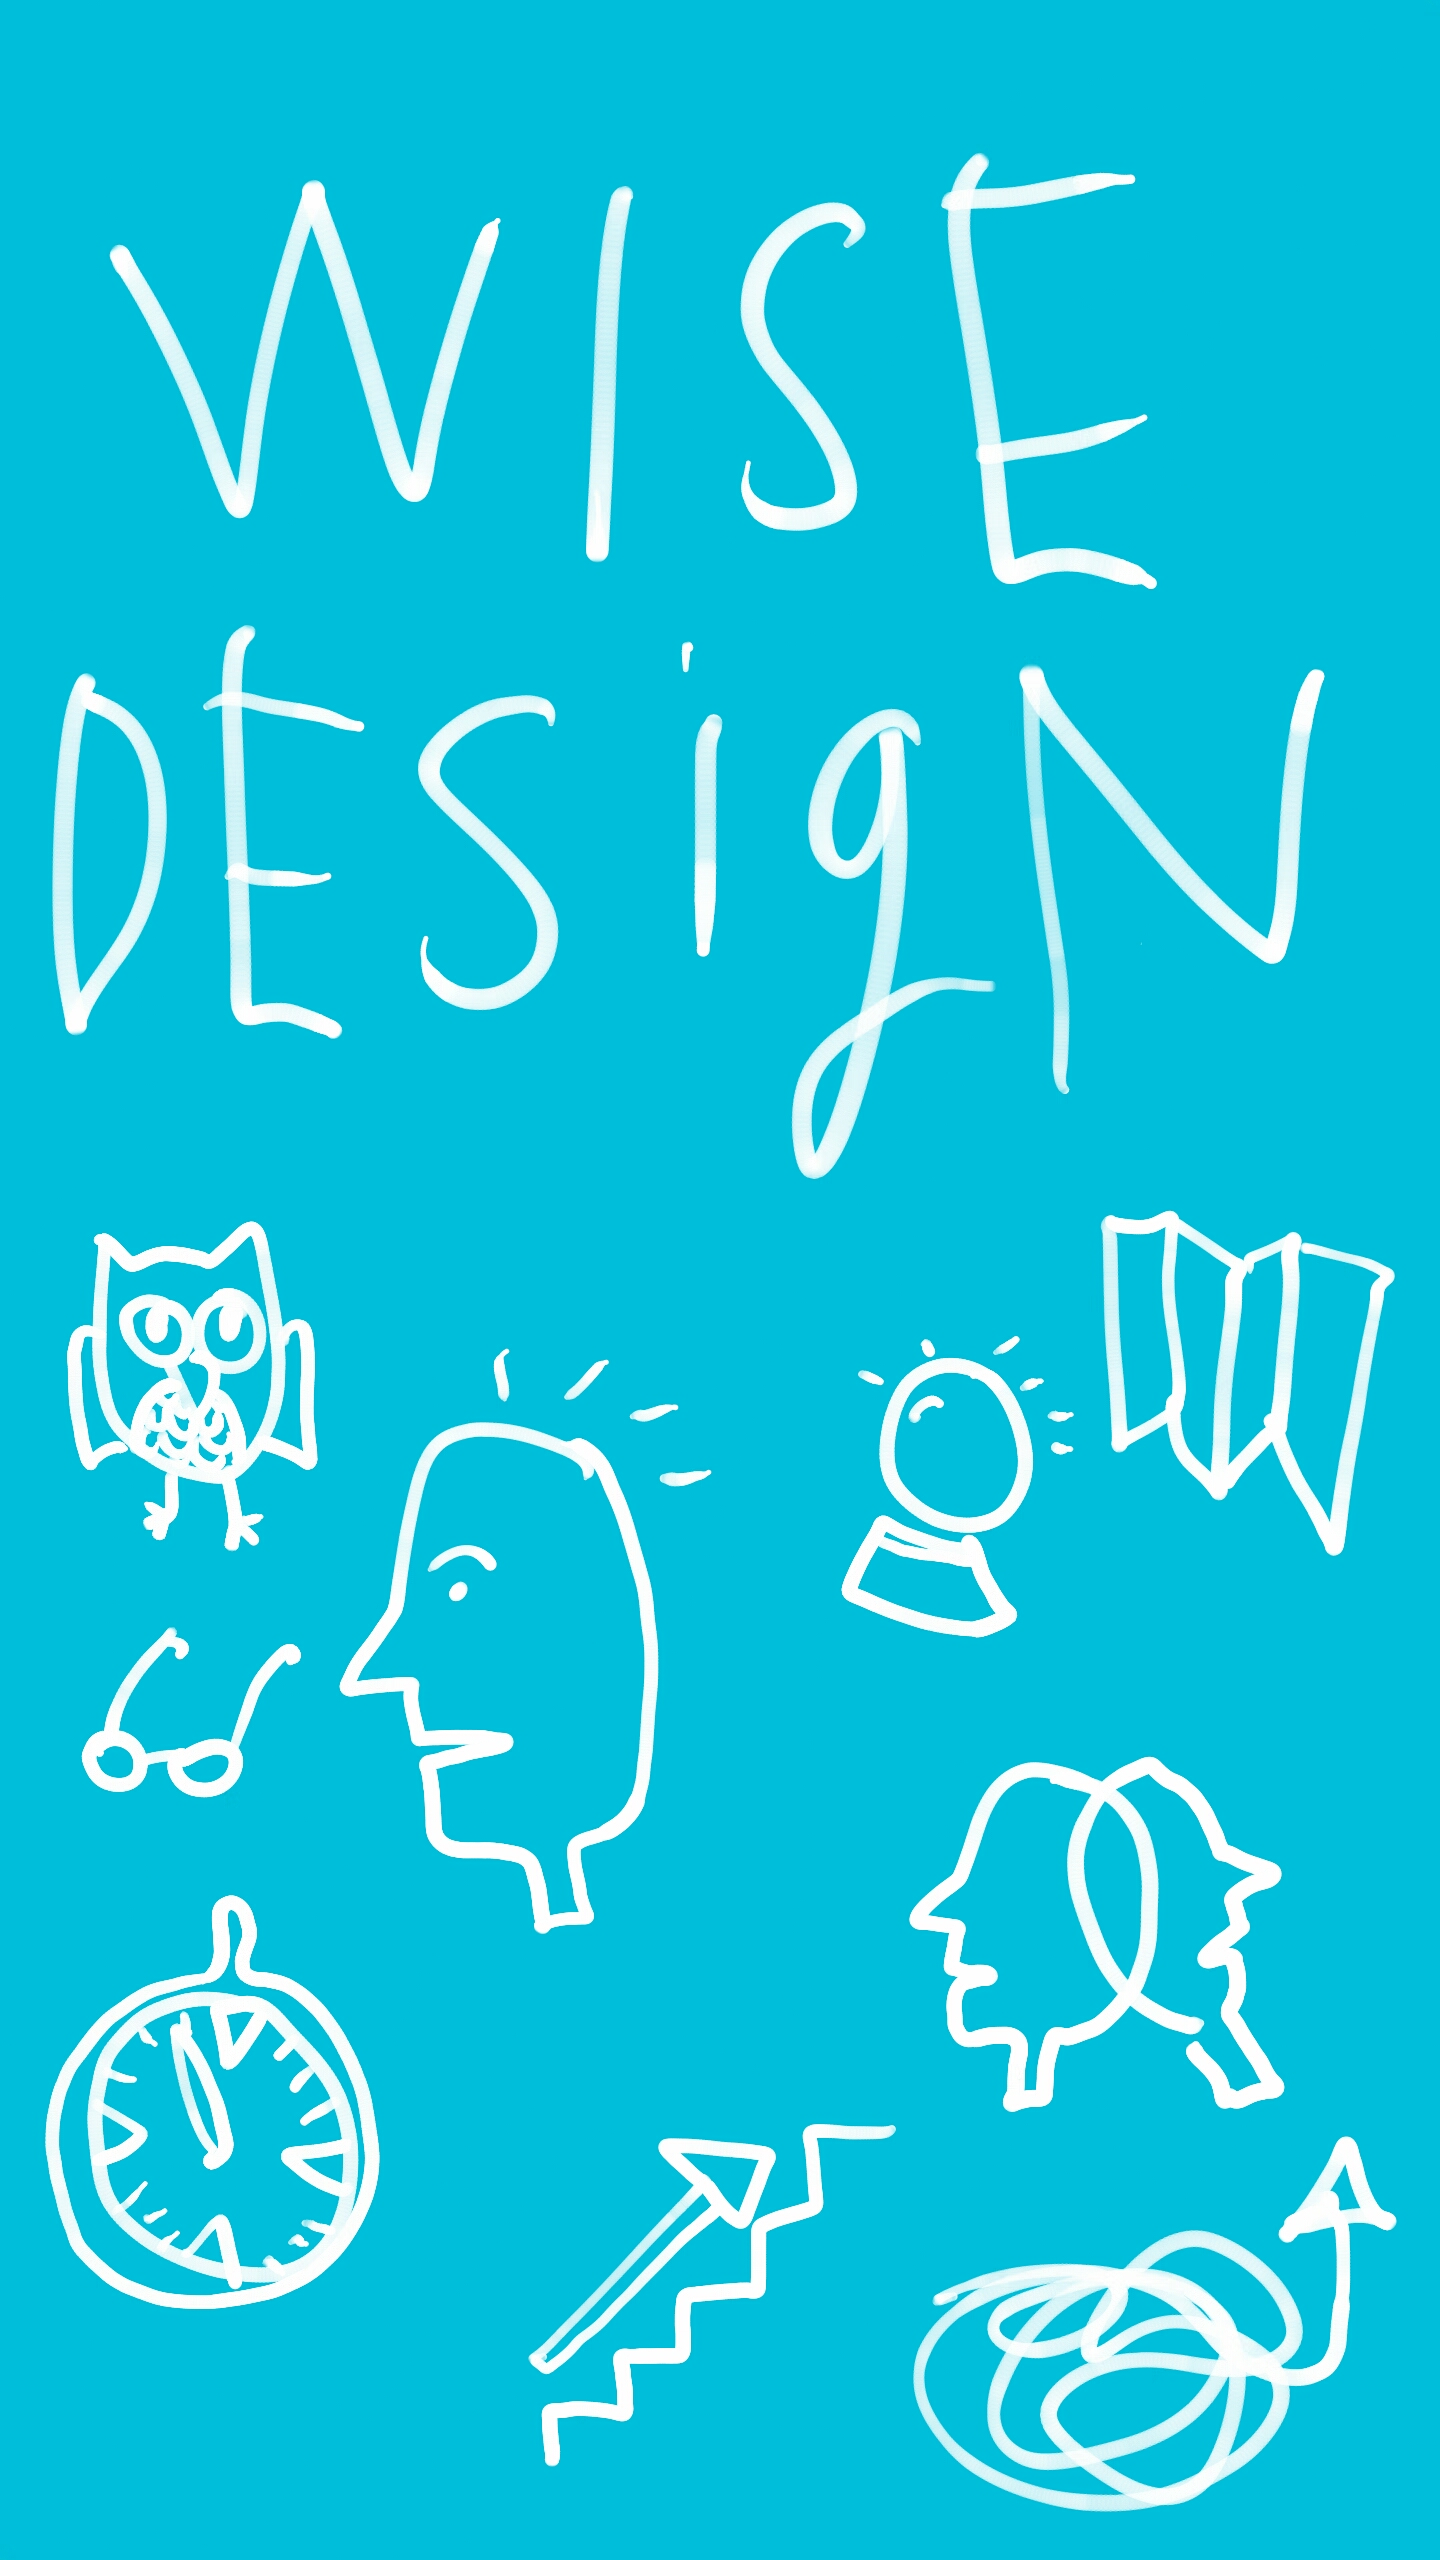 Wise Design - designing for smarter decision making